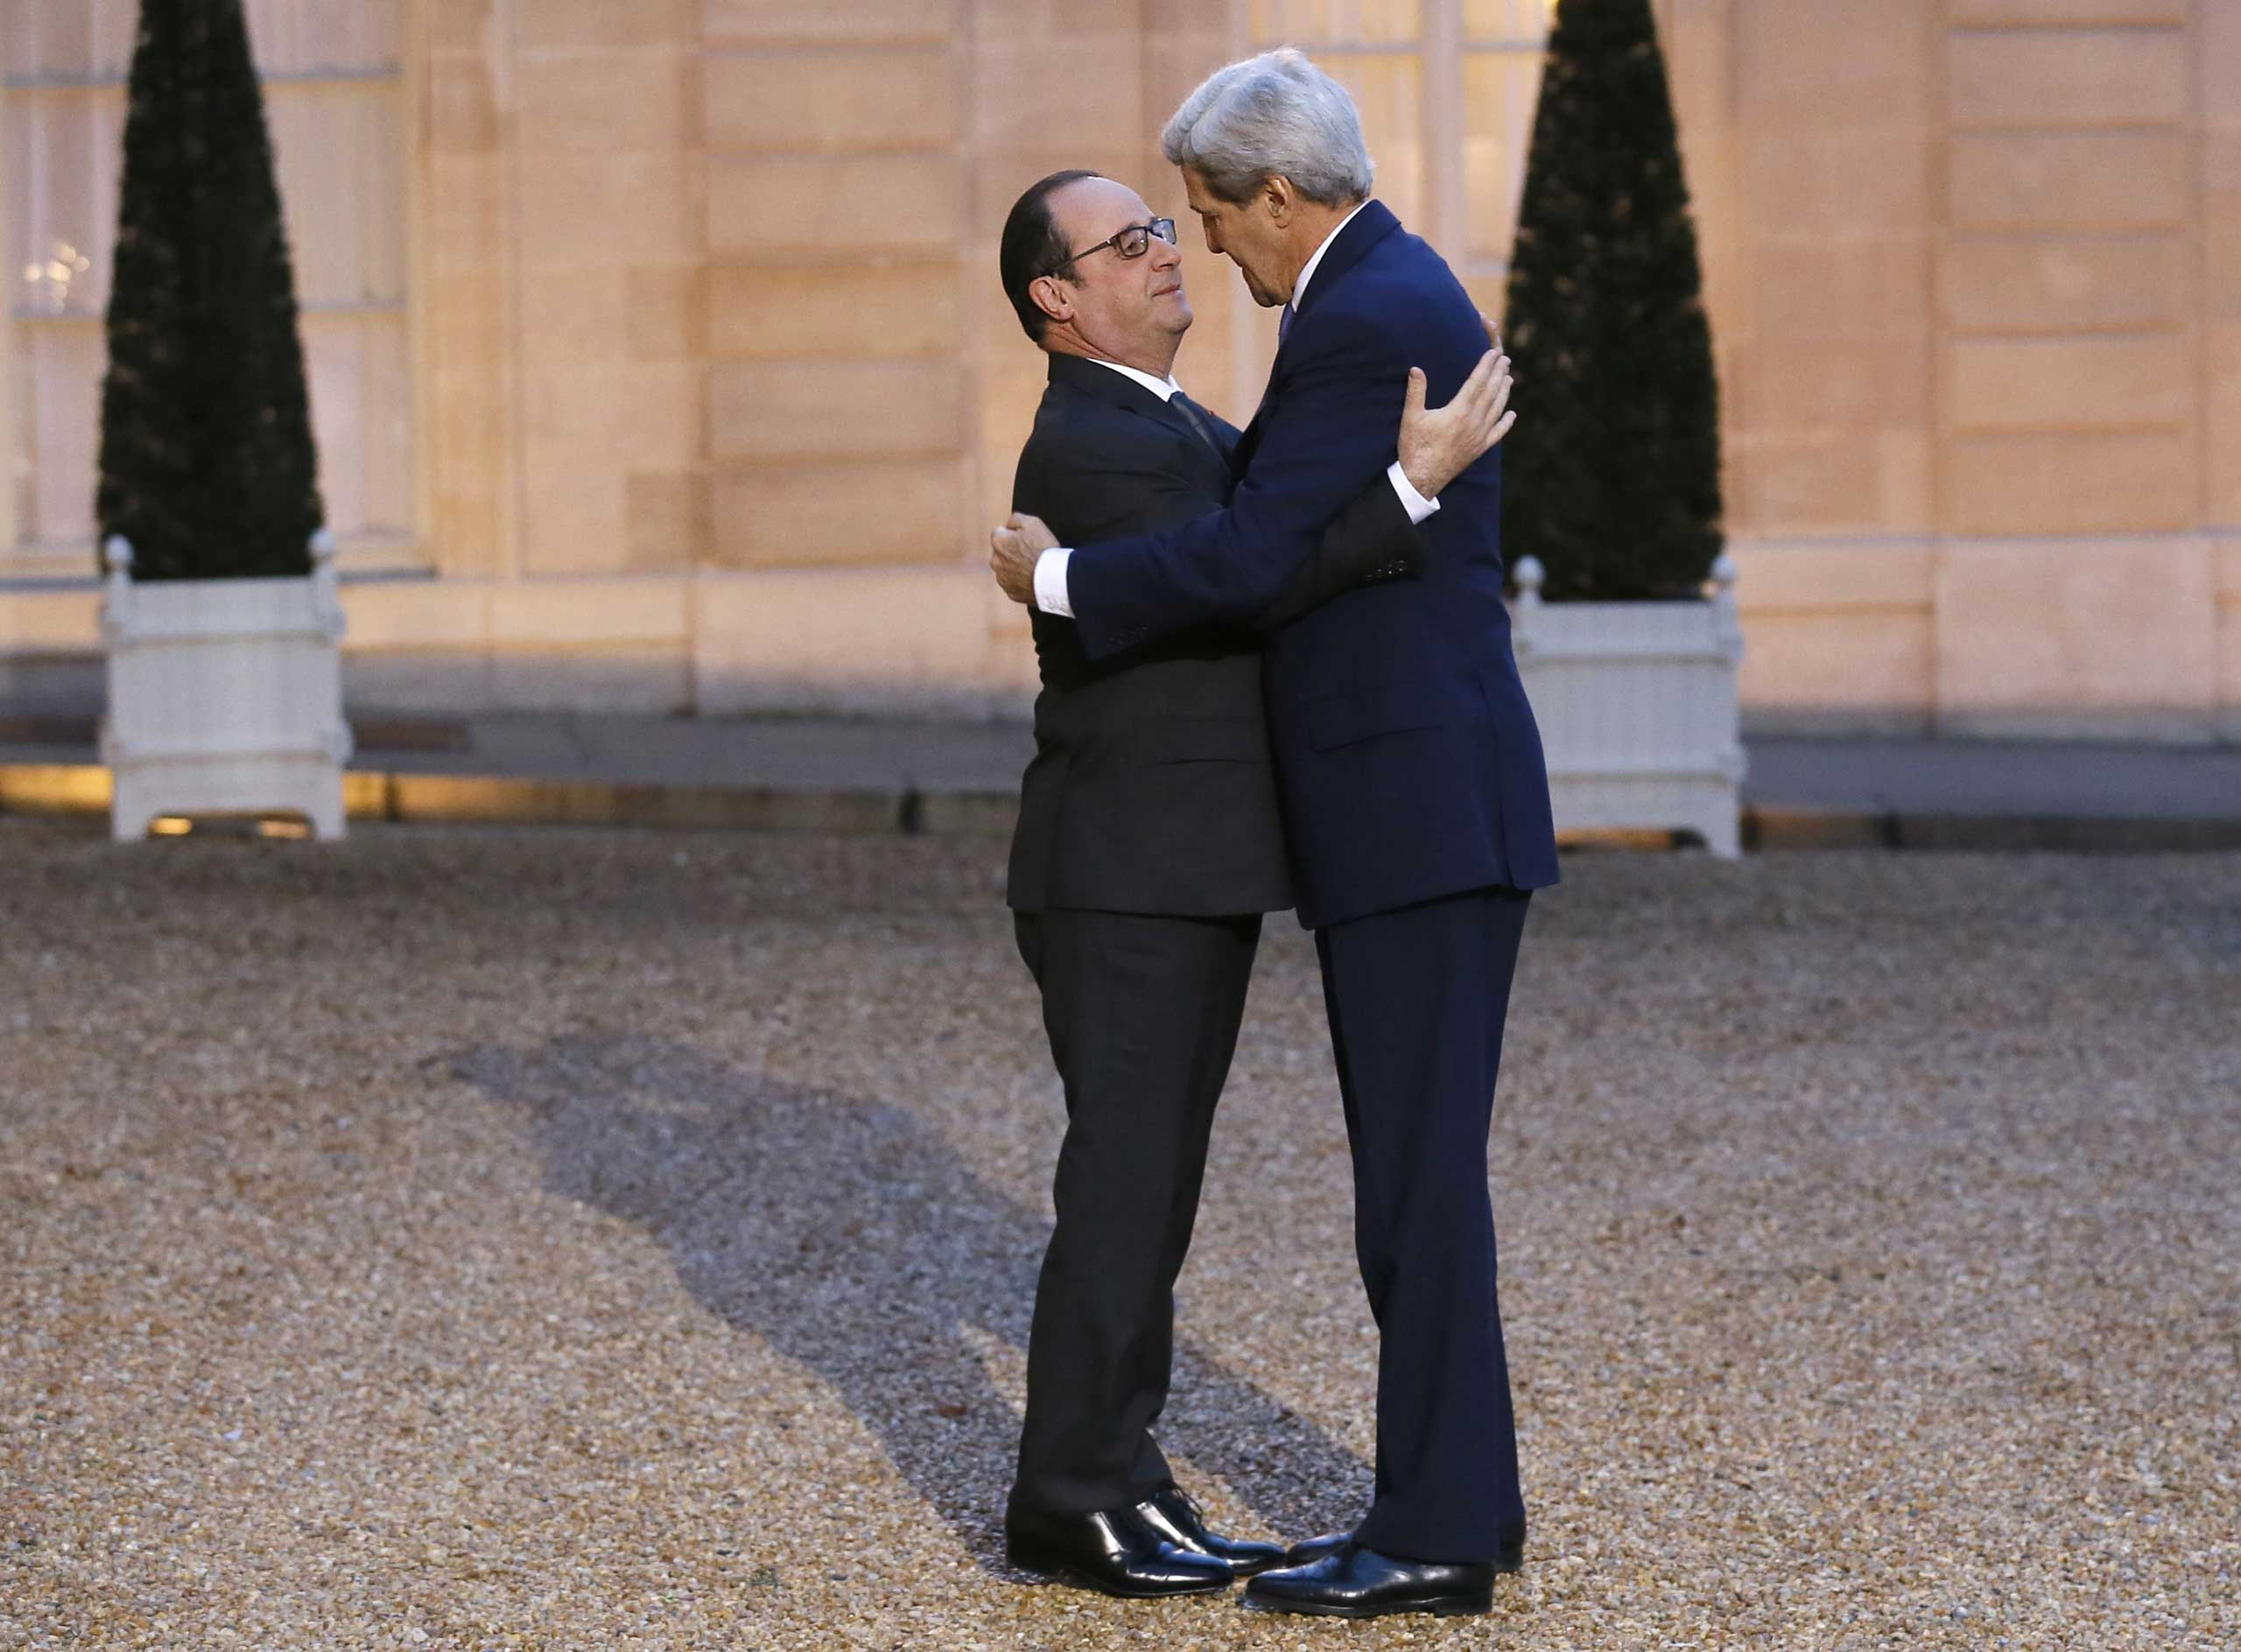 French president Francois Hollande (L) embraces US Secretary of State John Kerry prior to a meeting at the Elysee Palace on Jan. 16, 2015 in Paris.